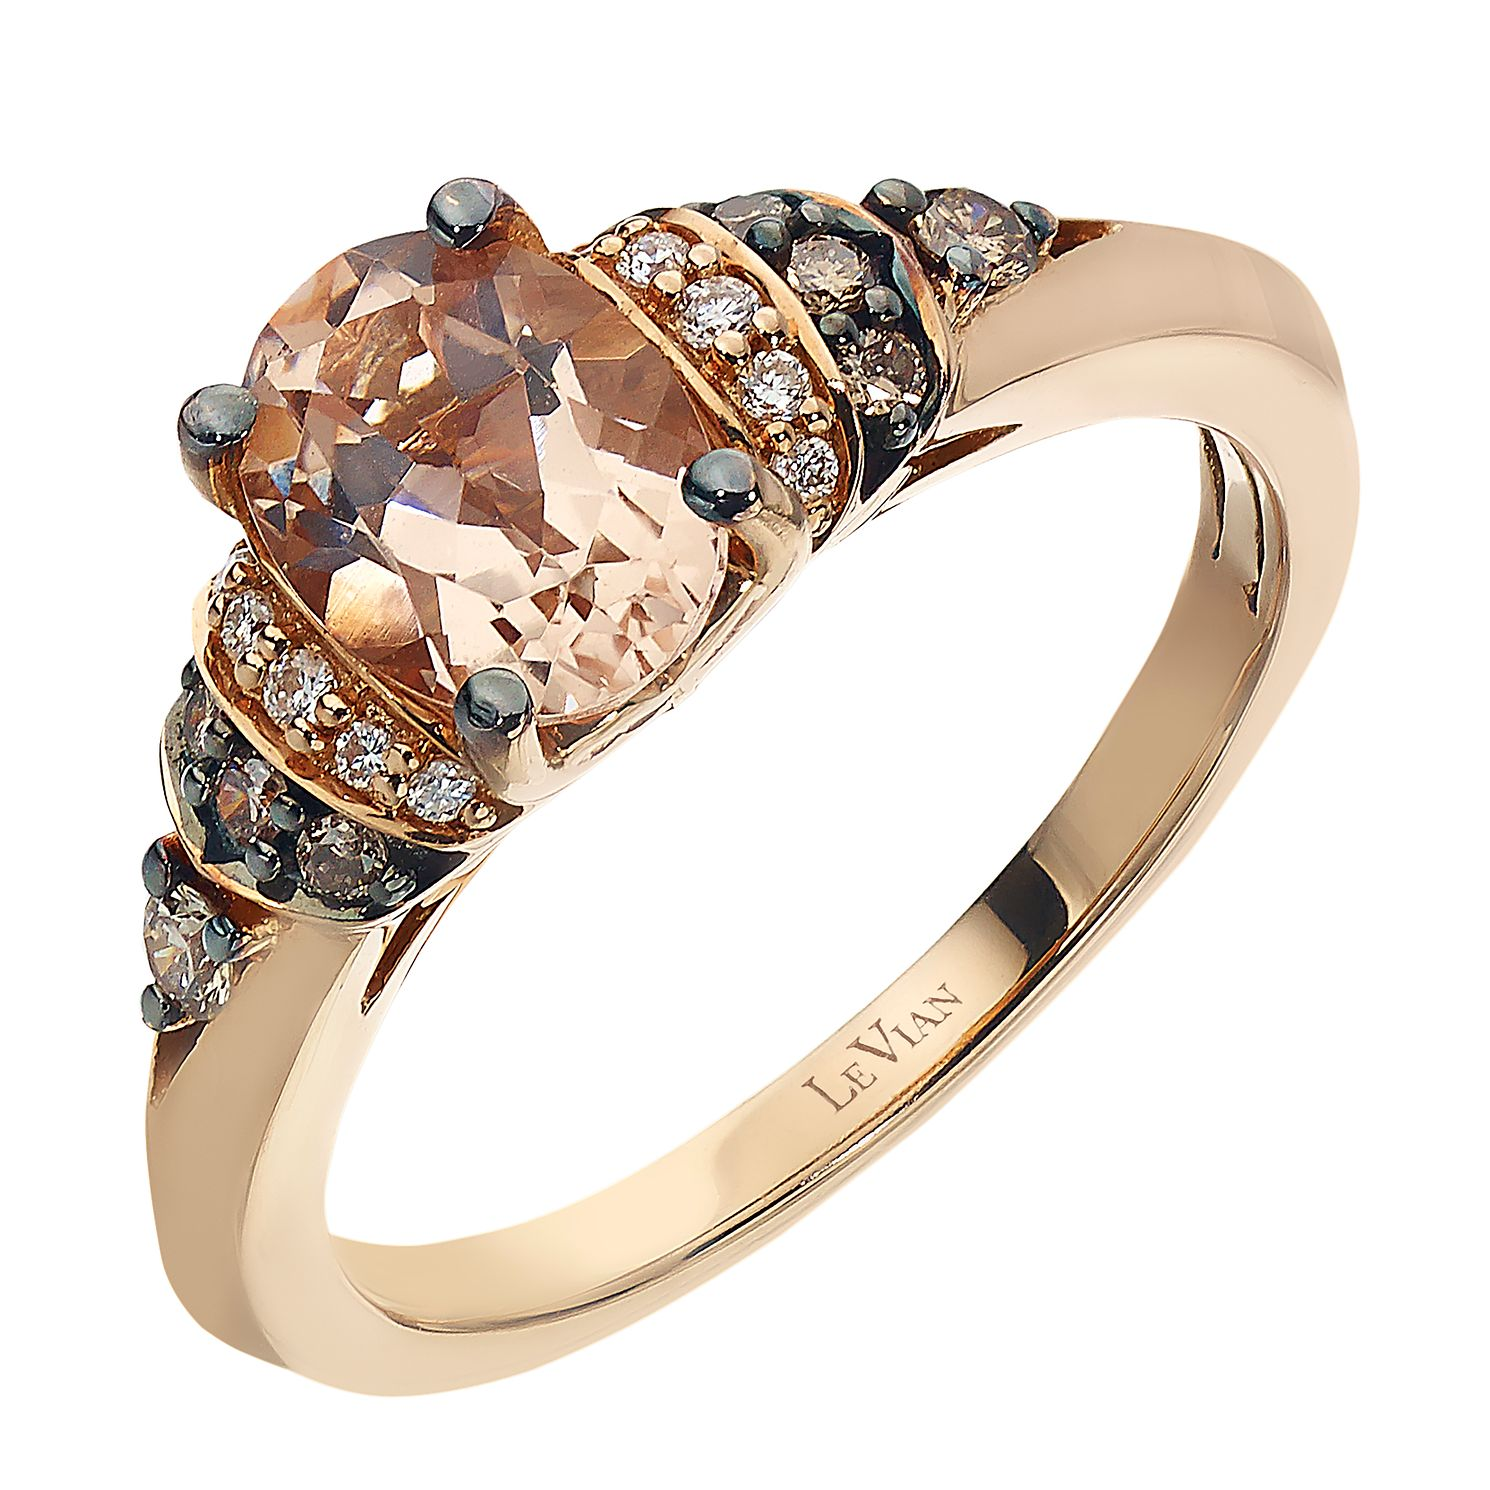 media t w chocolate tw in ct engagement ring set and rose white le wedding rings diamond gold vian